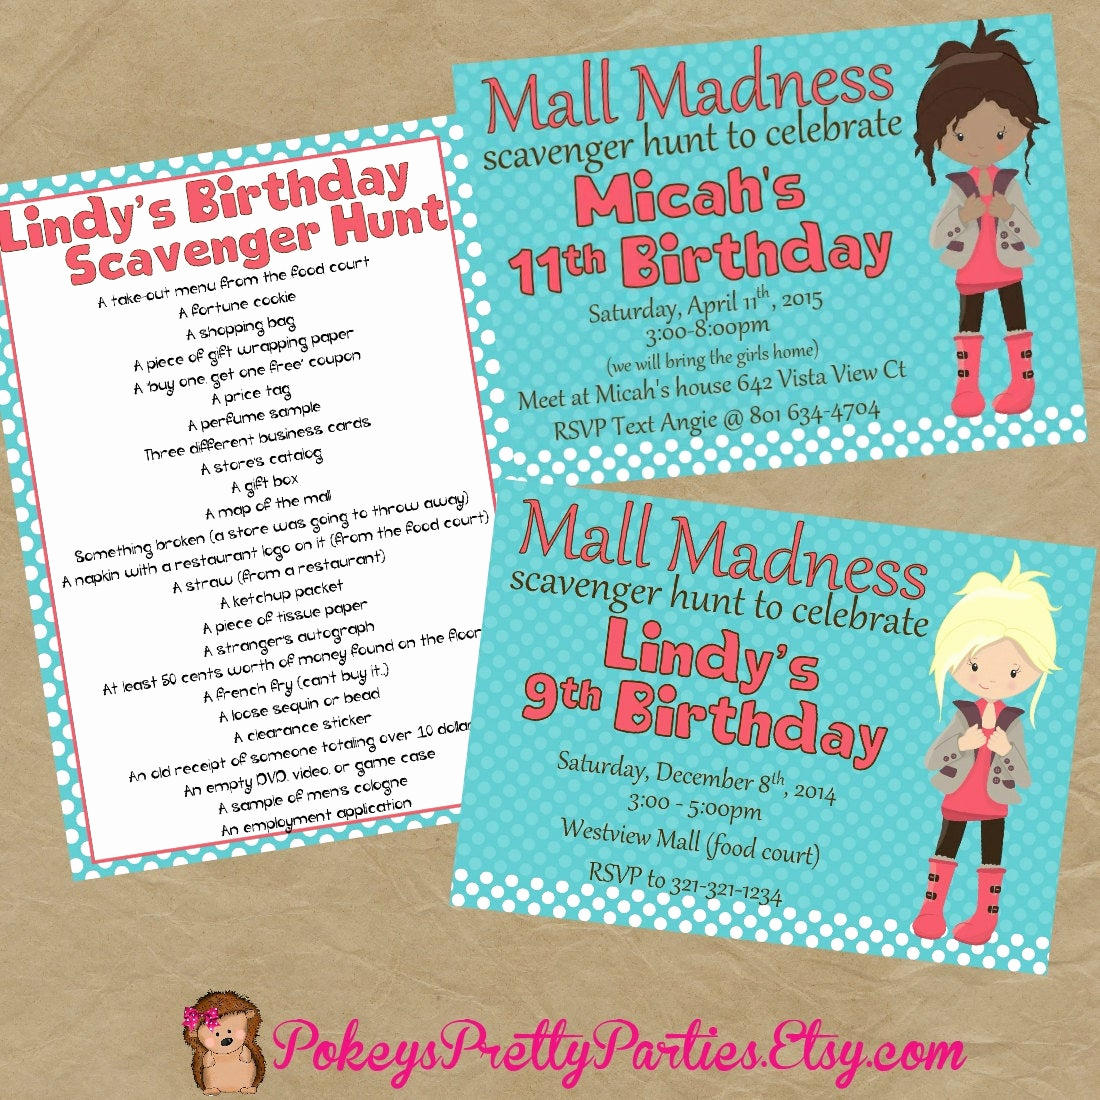 Mall Scavenger Hunt Invitation Beautiful Mall Scavenger Hunt Birthday Party Invitation Invite